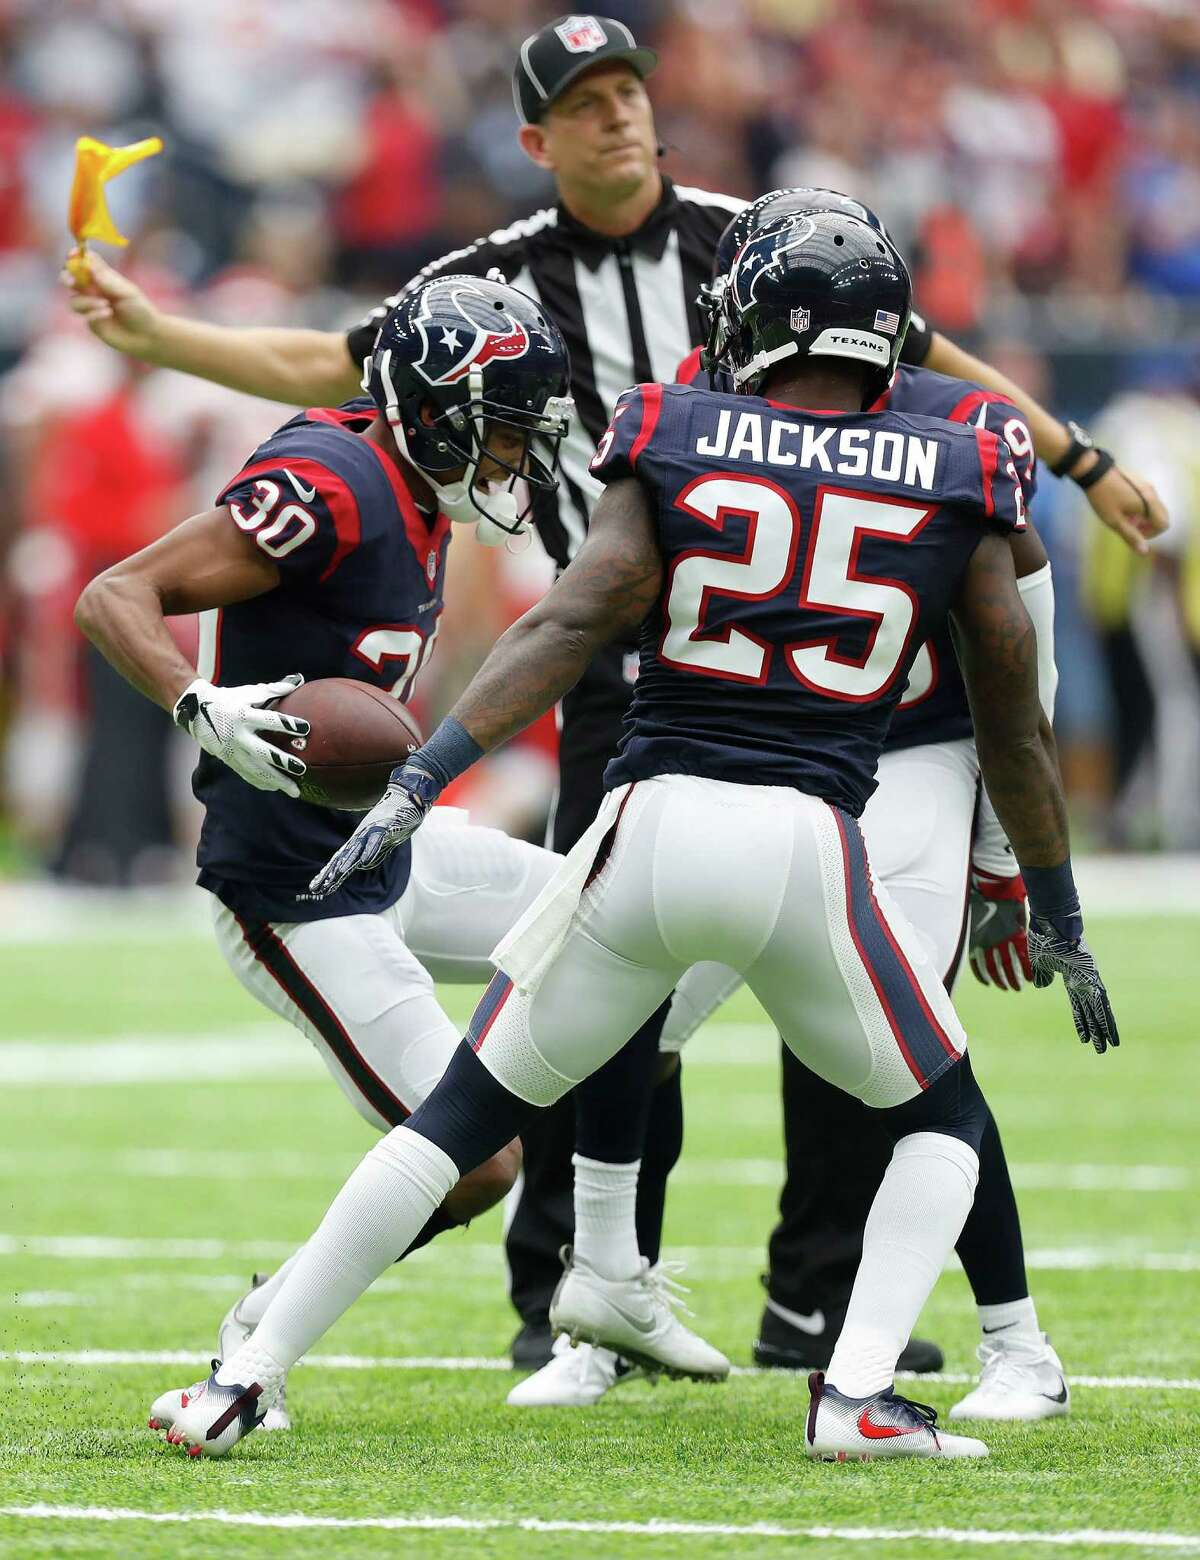 Houston Texans cornerback Kevin Johnson (30) gets called for celebrating after his interception was called back during the first half of an NFL football game at NRG Stadium, Sunday, Sept. 18, 2016 in Houston.